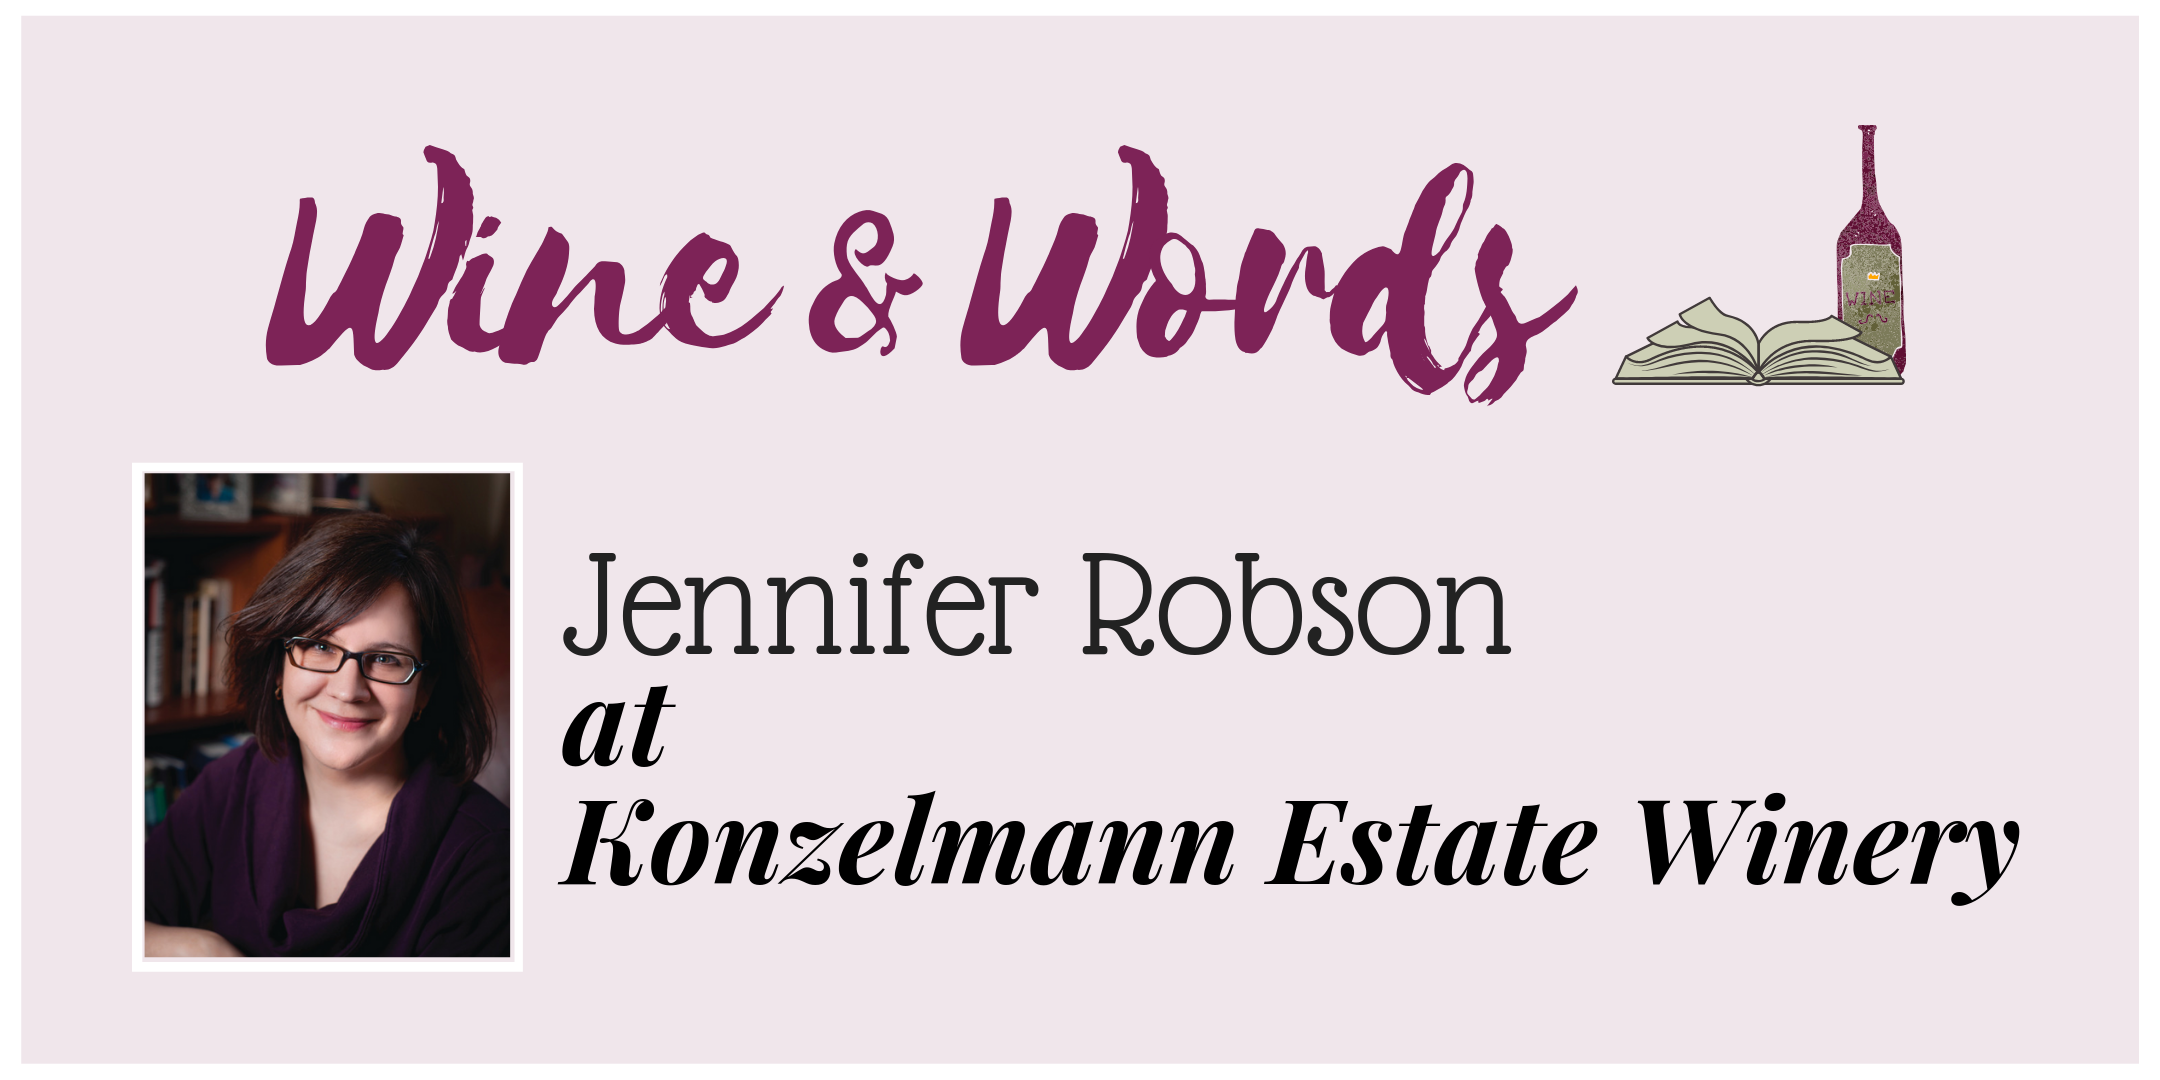 Jennifer Robson at Konzelmann Estate Winery